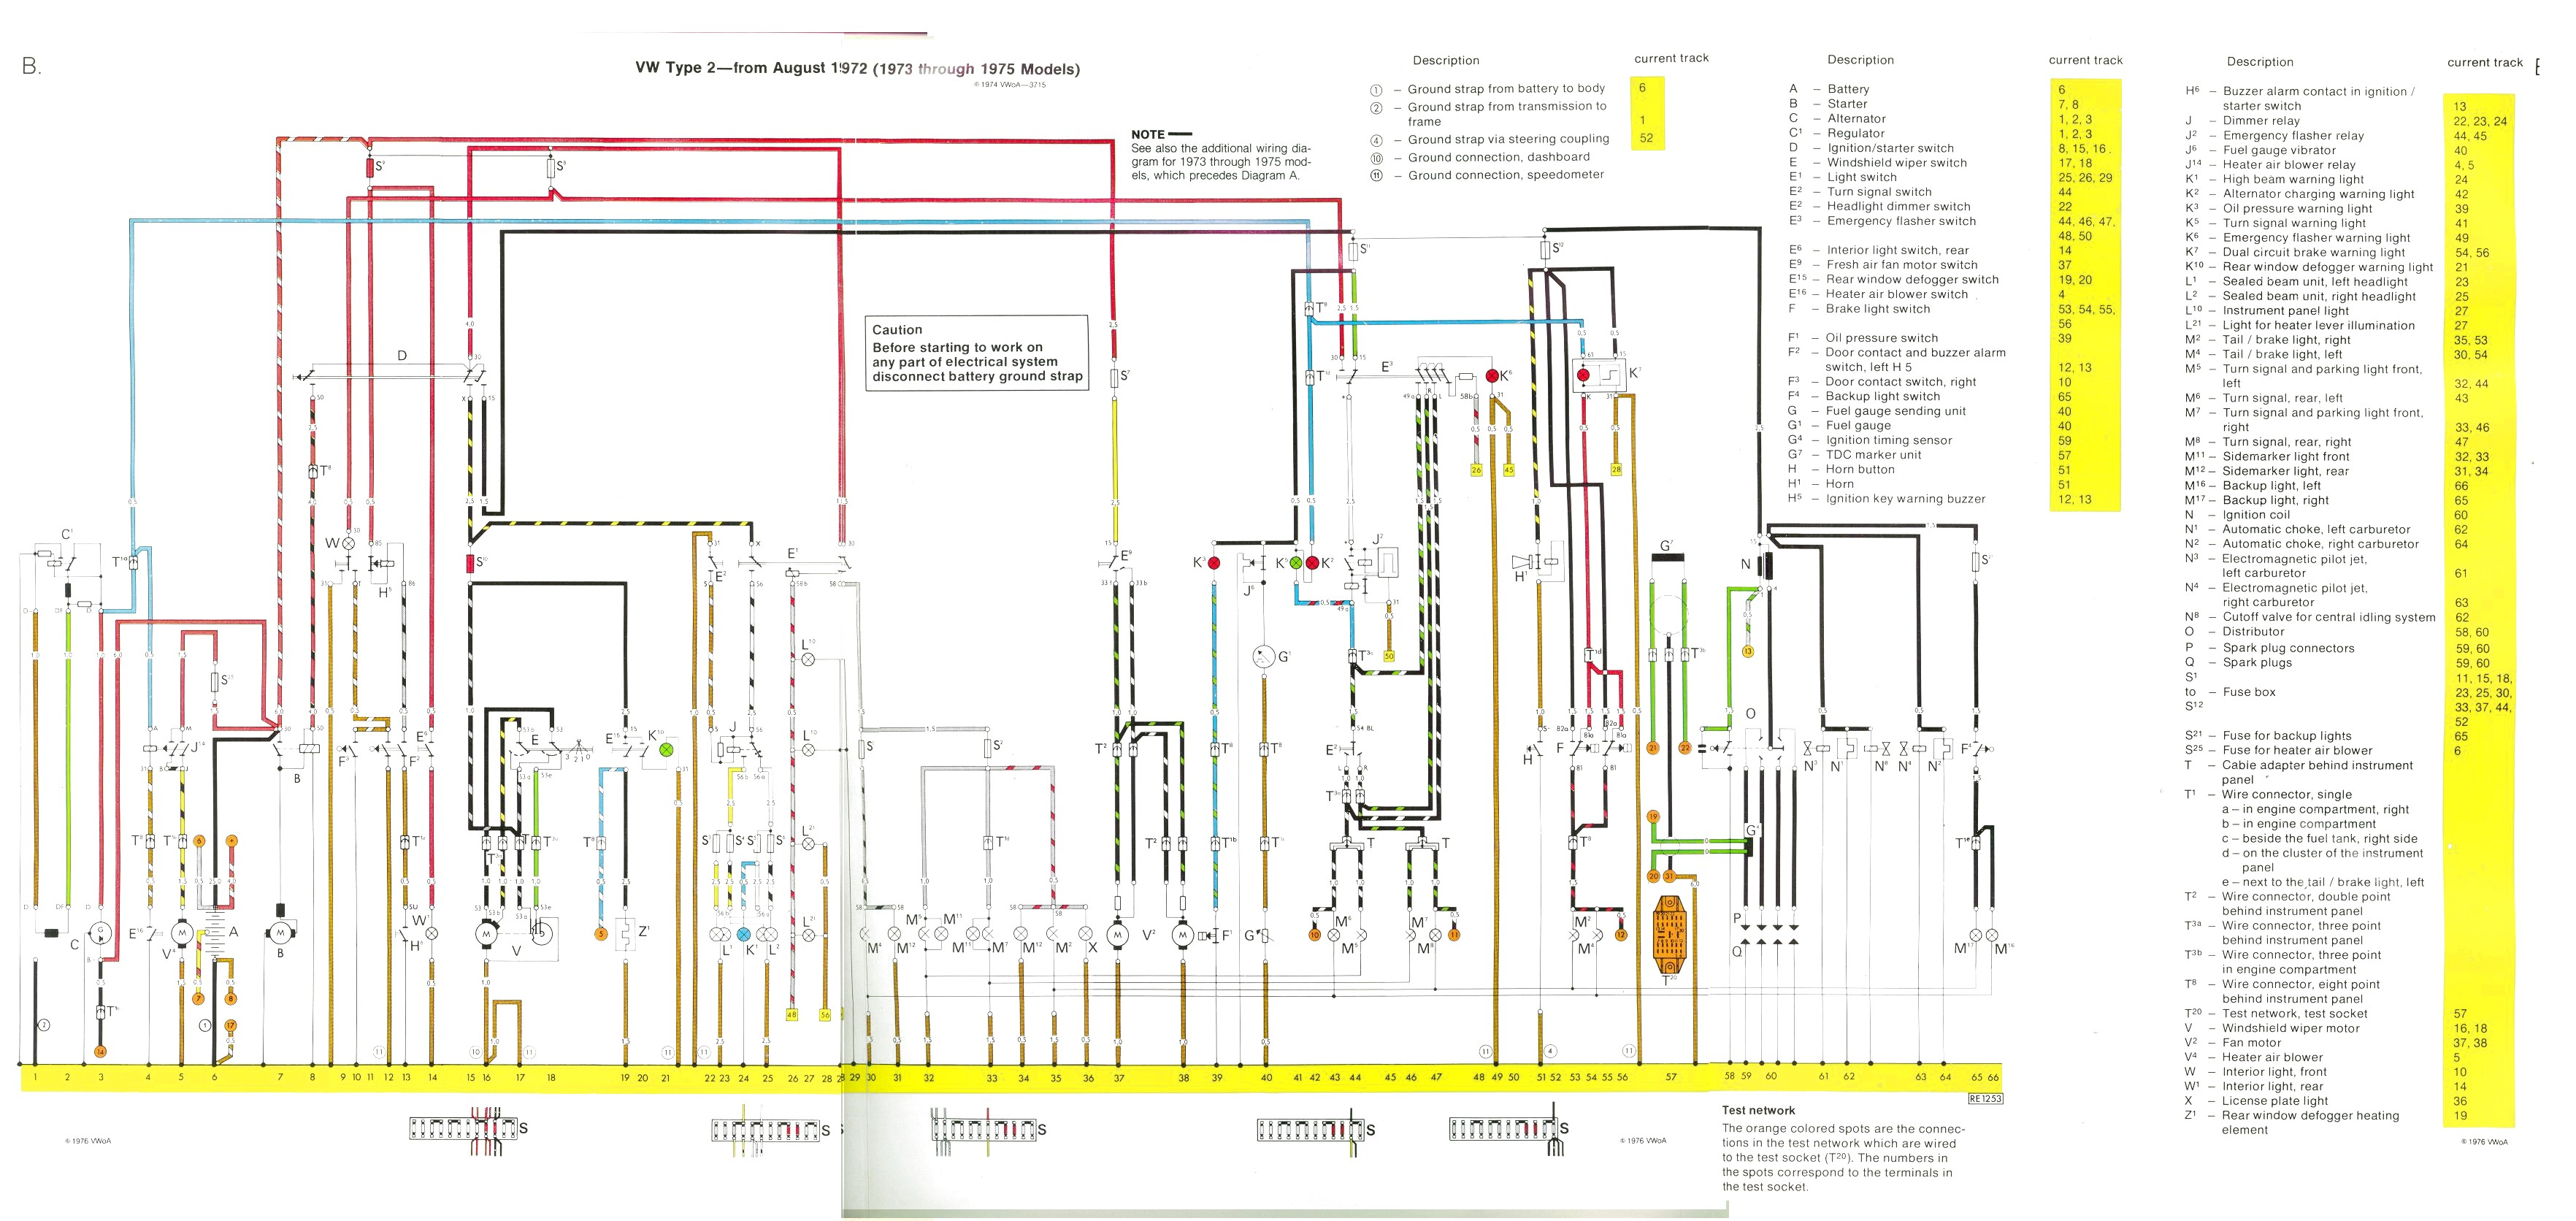 Miraculous Ic Bus Wiring Diagram Wiring Diagrams For Your Car Or Truck Wiring Cloud Funidienstapotheekhoekschewaardnl